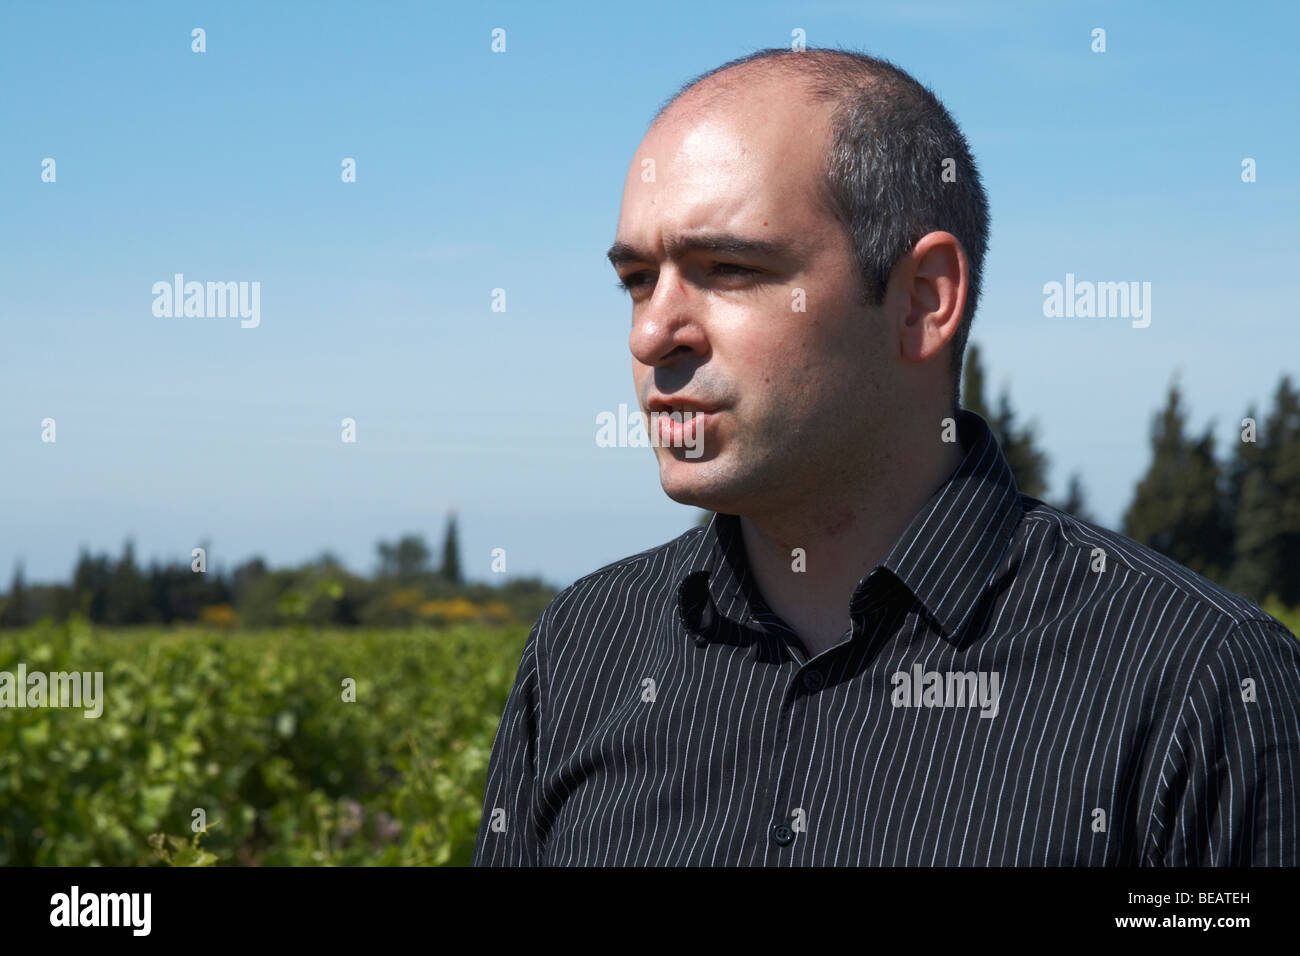 Frederic Sablayrolle, winemaker cellier des chartreux rhone france - Stock Image